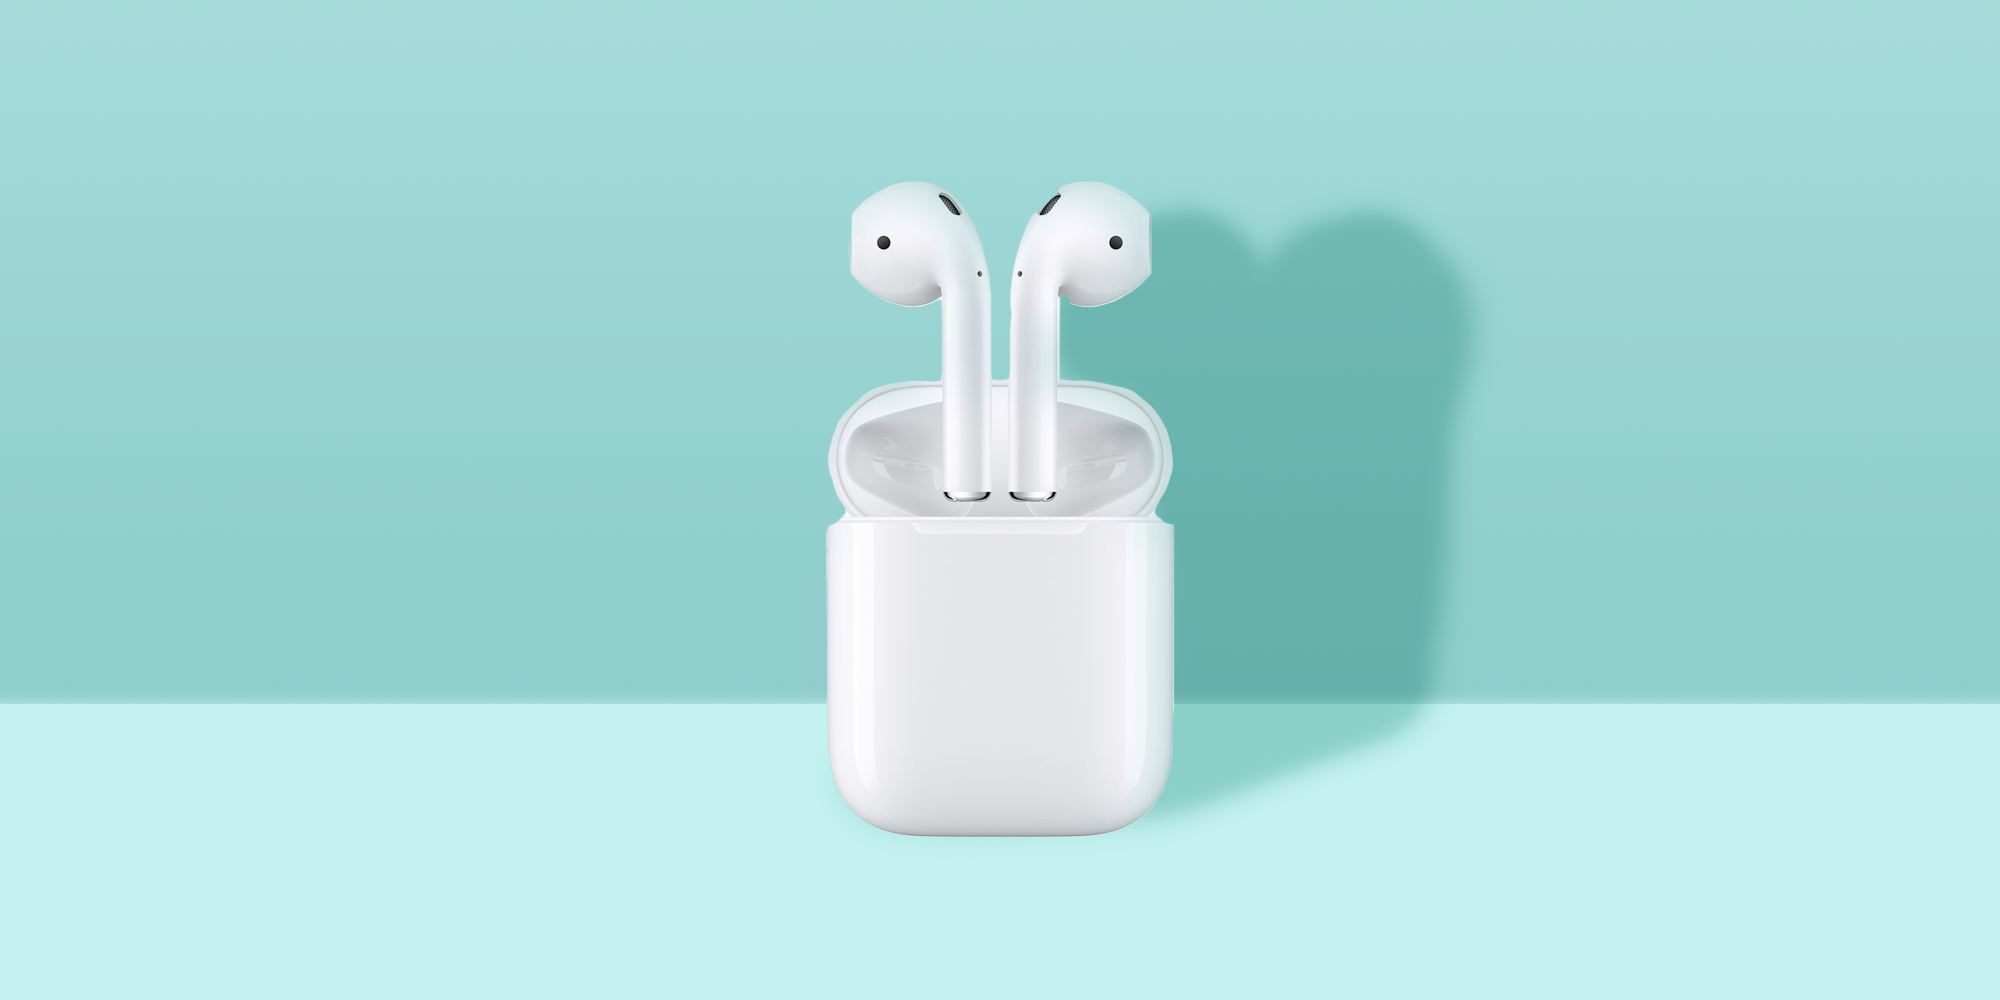 How Do $40 Fake AirPods Compare to the Real Thing?